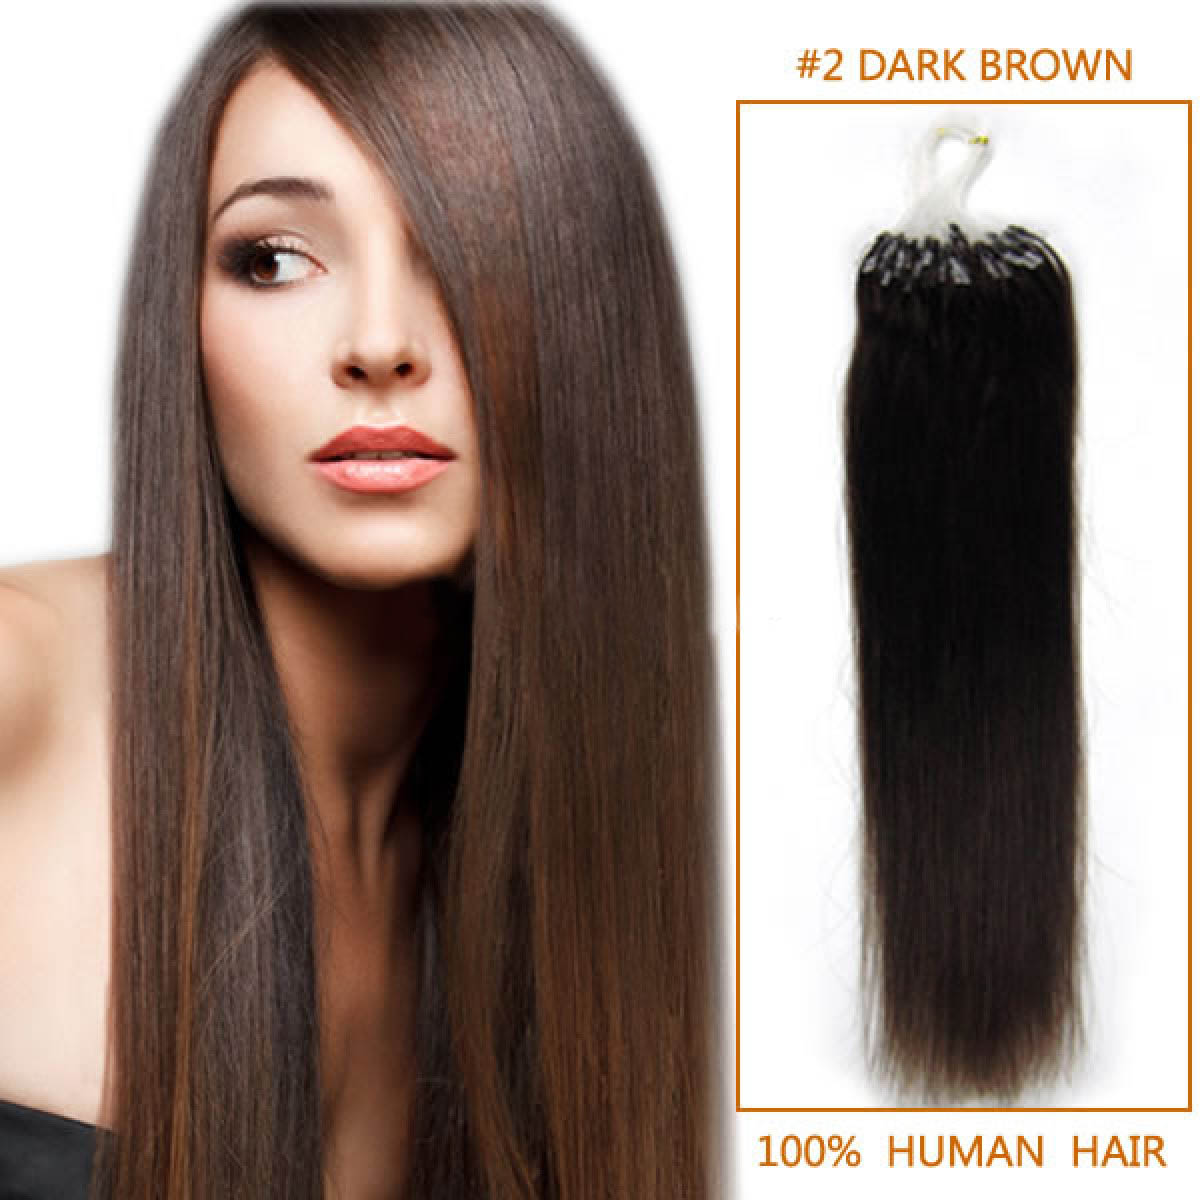 16 Inch 2 Dark Brown Micro Loop Human Hair Extensions 100s 100g